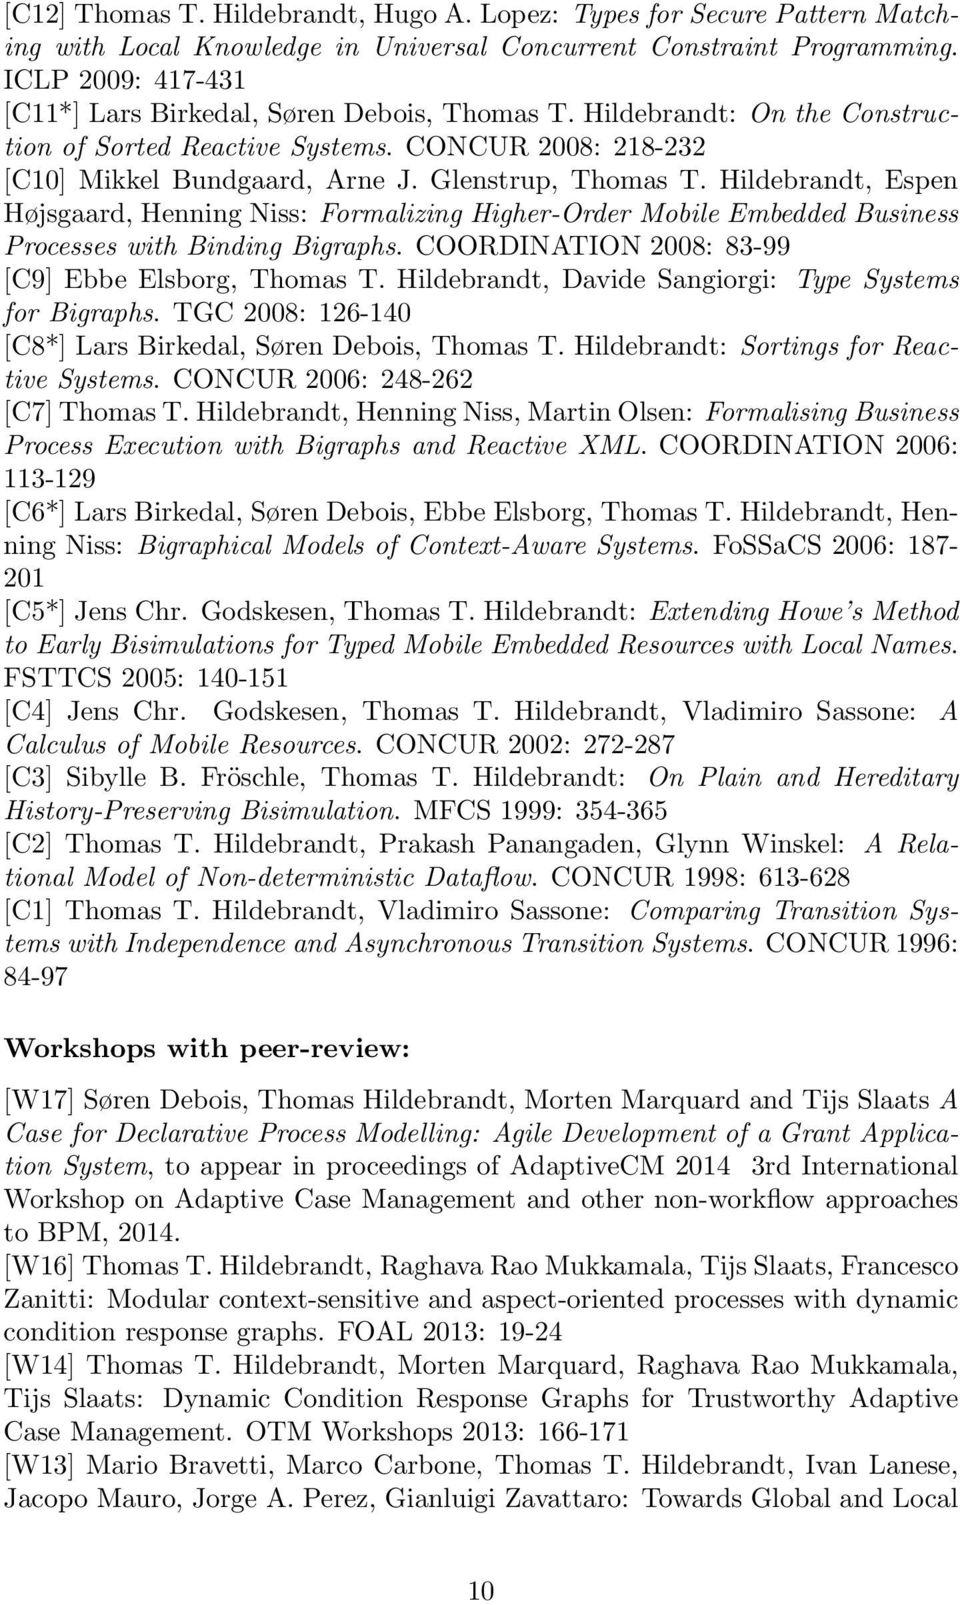 Hildebrandt, Espen Højsgaard, Henning Niss: Formalizing Higher-Order Mobile Embedded Business Processes with Binding Bigraphs. COORDINATION 2008: 83-99 [C9] Ebbe Elsborg, Thomas T.